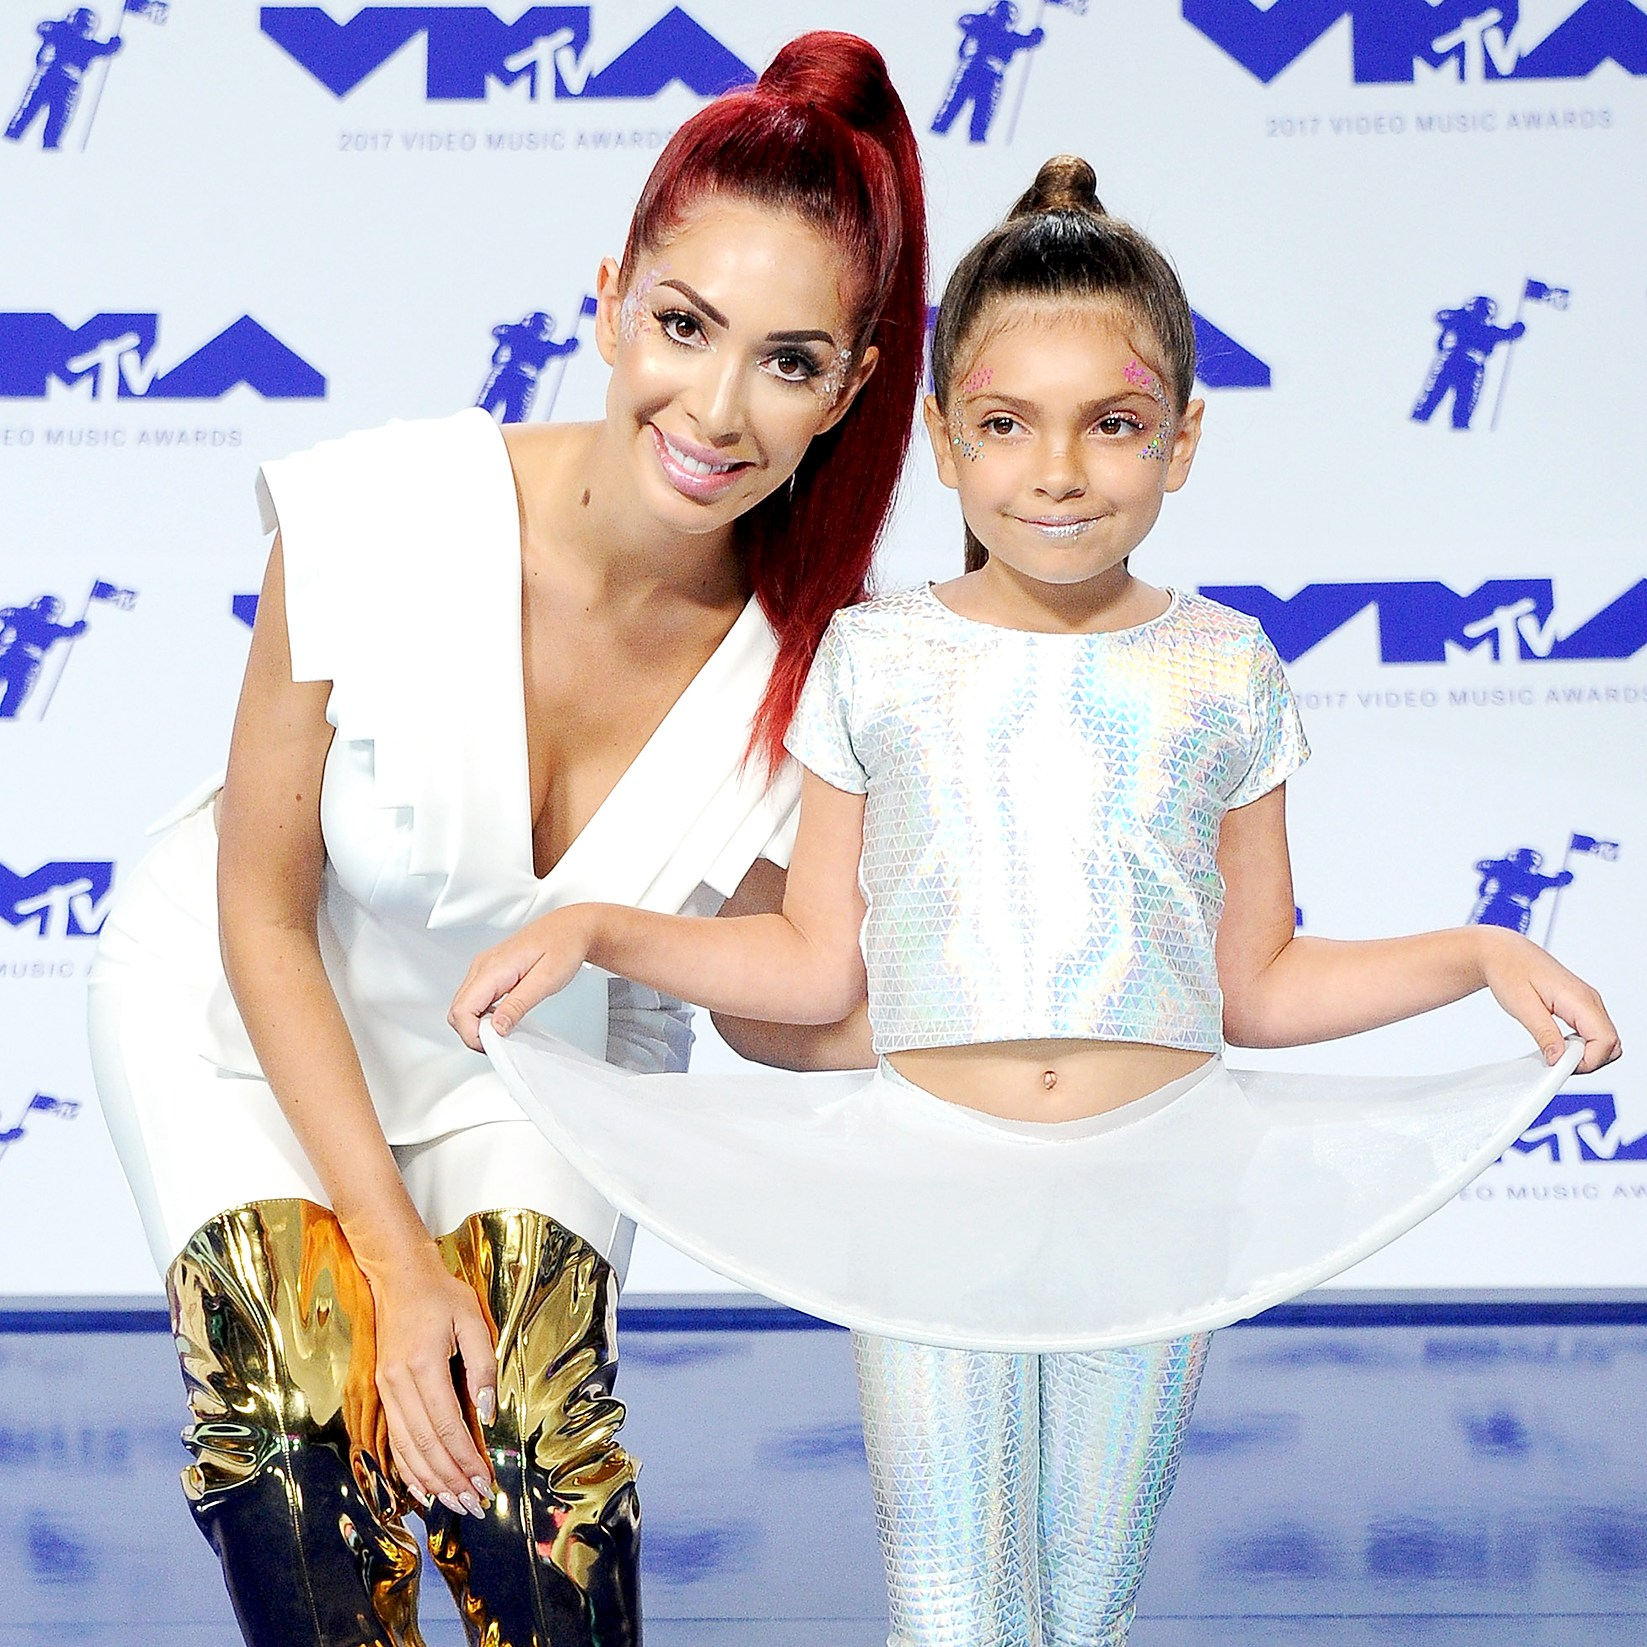 Farrah Abraham and daughter arrive at the 2017 MTV Video Music Awards at The Forum on August 27, 2017 in Inglewood, California.